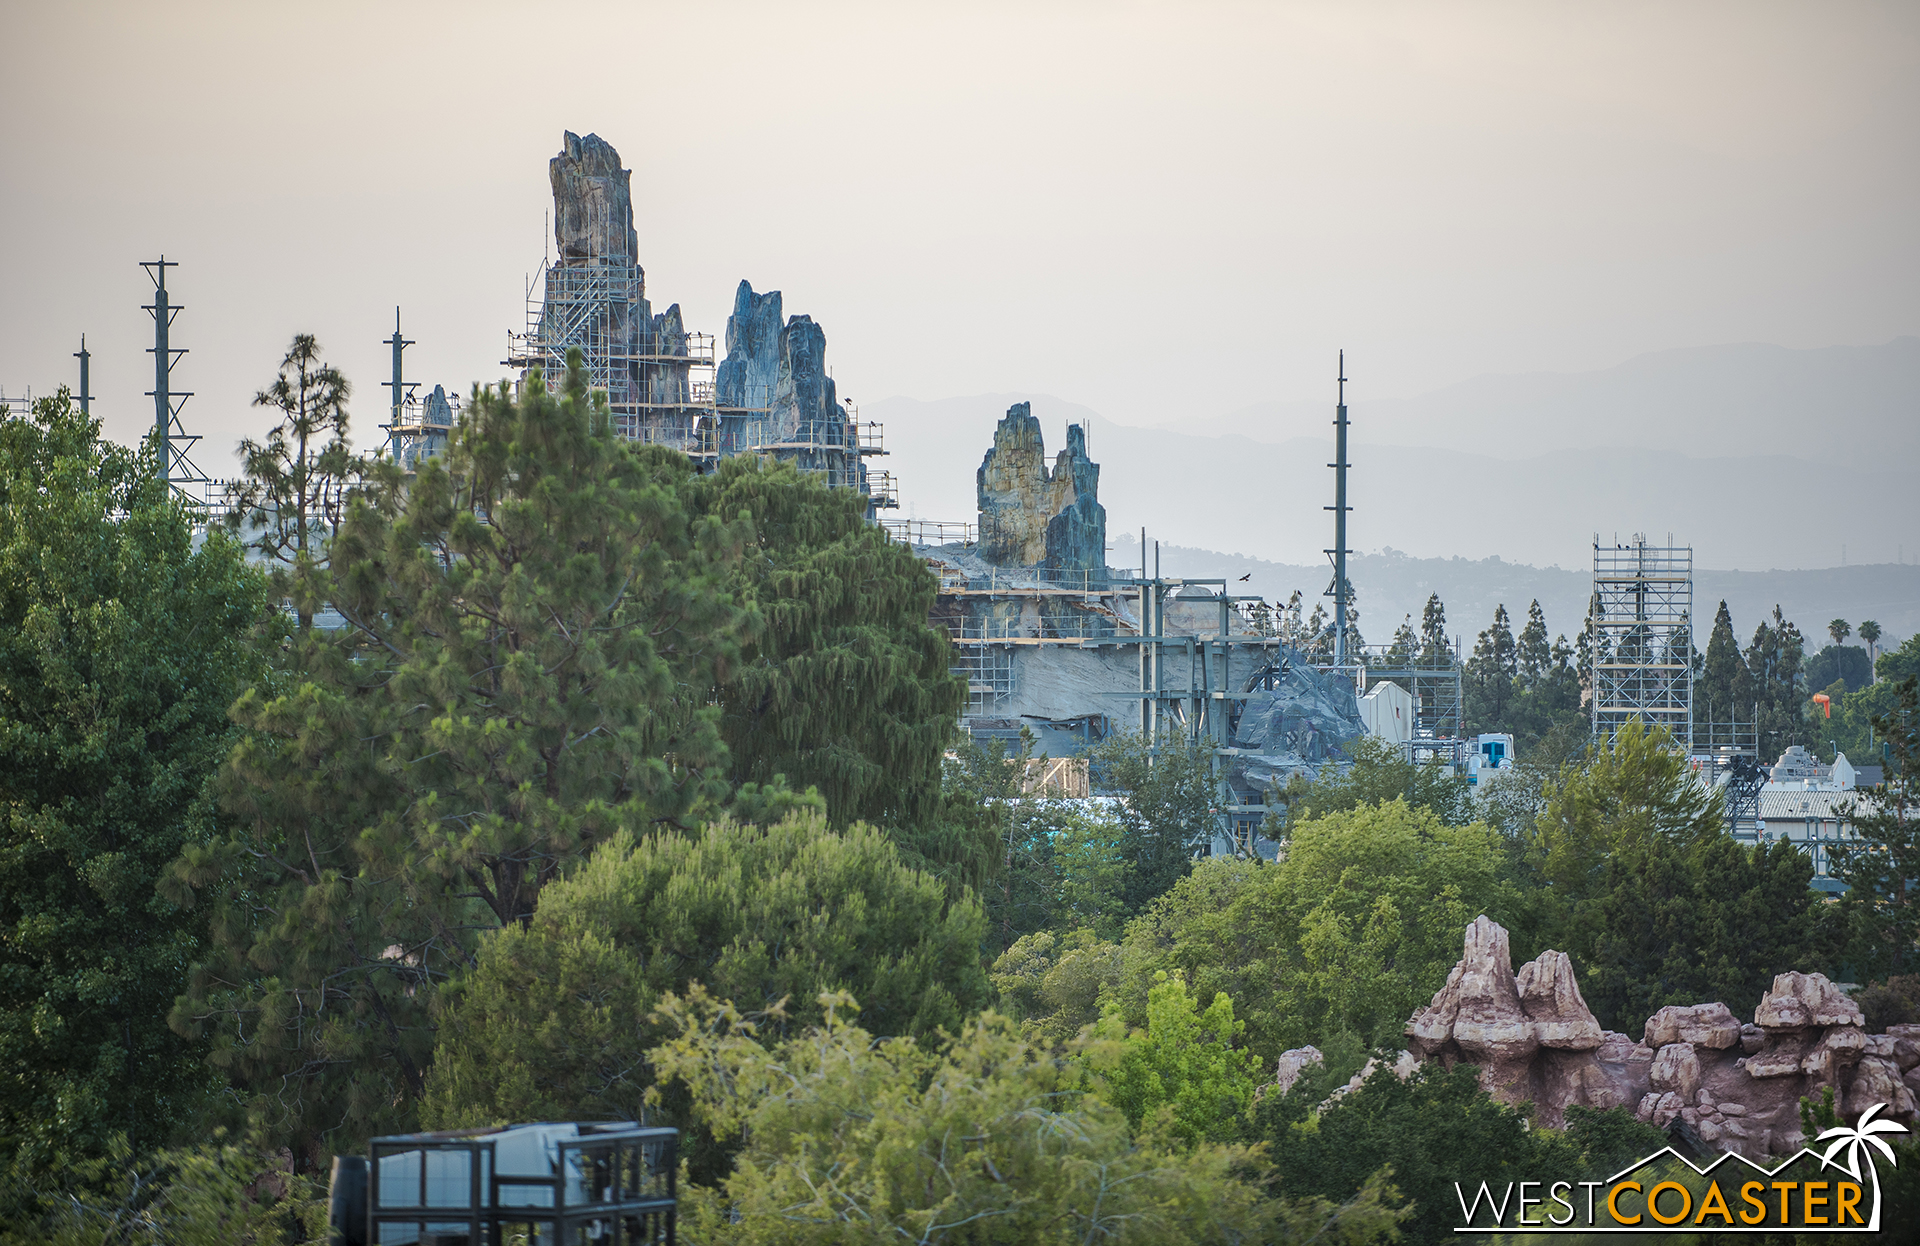 And here's the geology above the treetops from Tarzan's Treehouse.